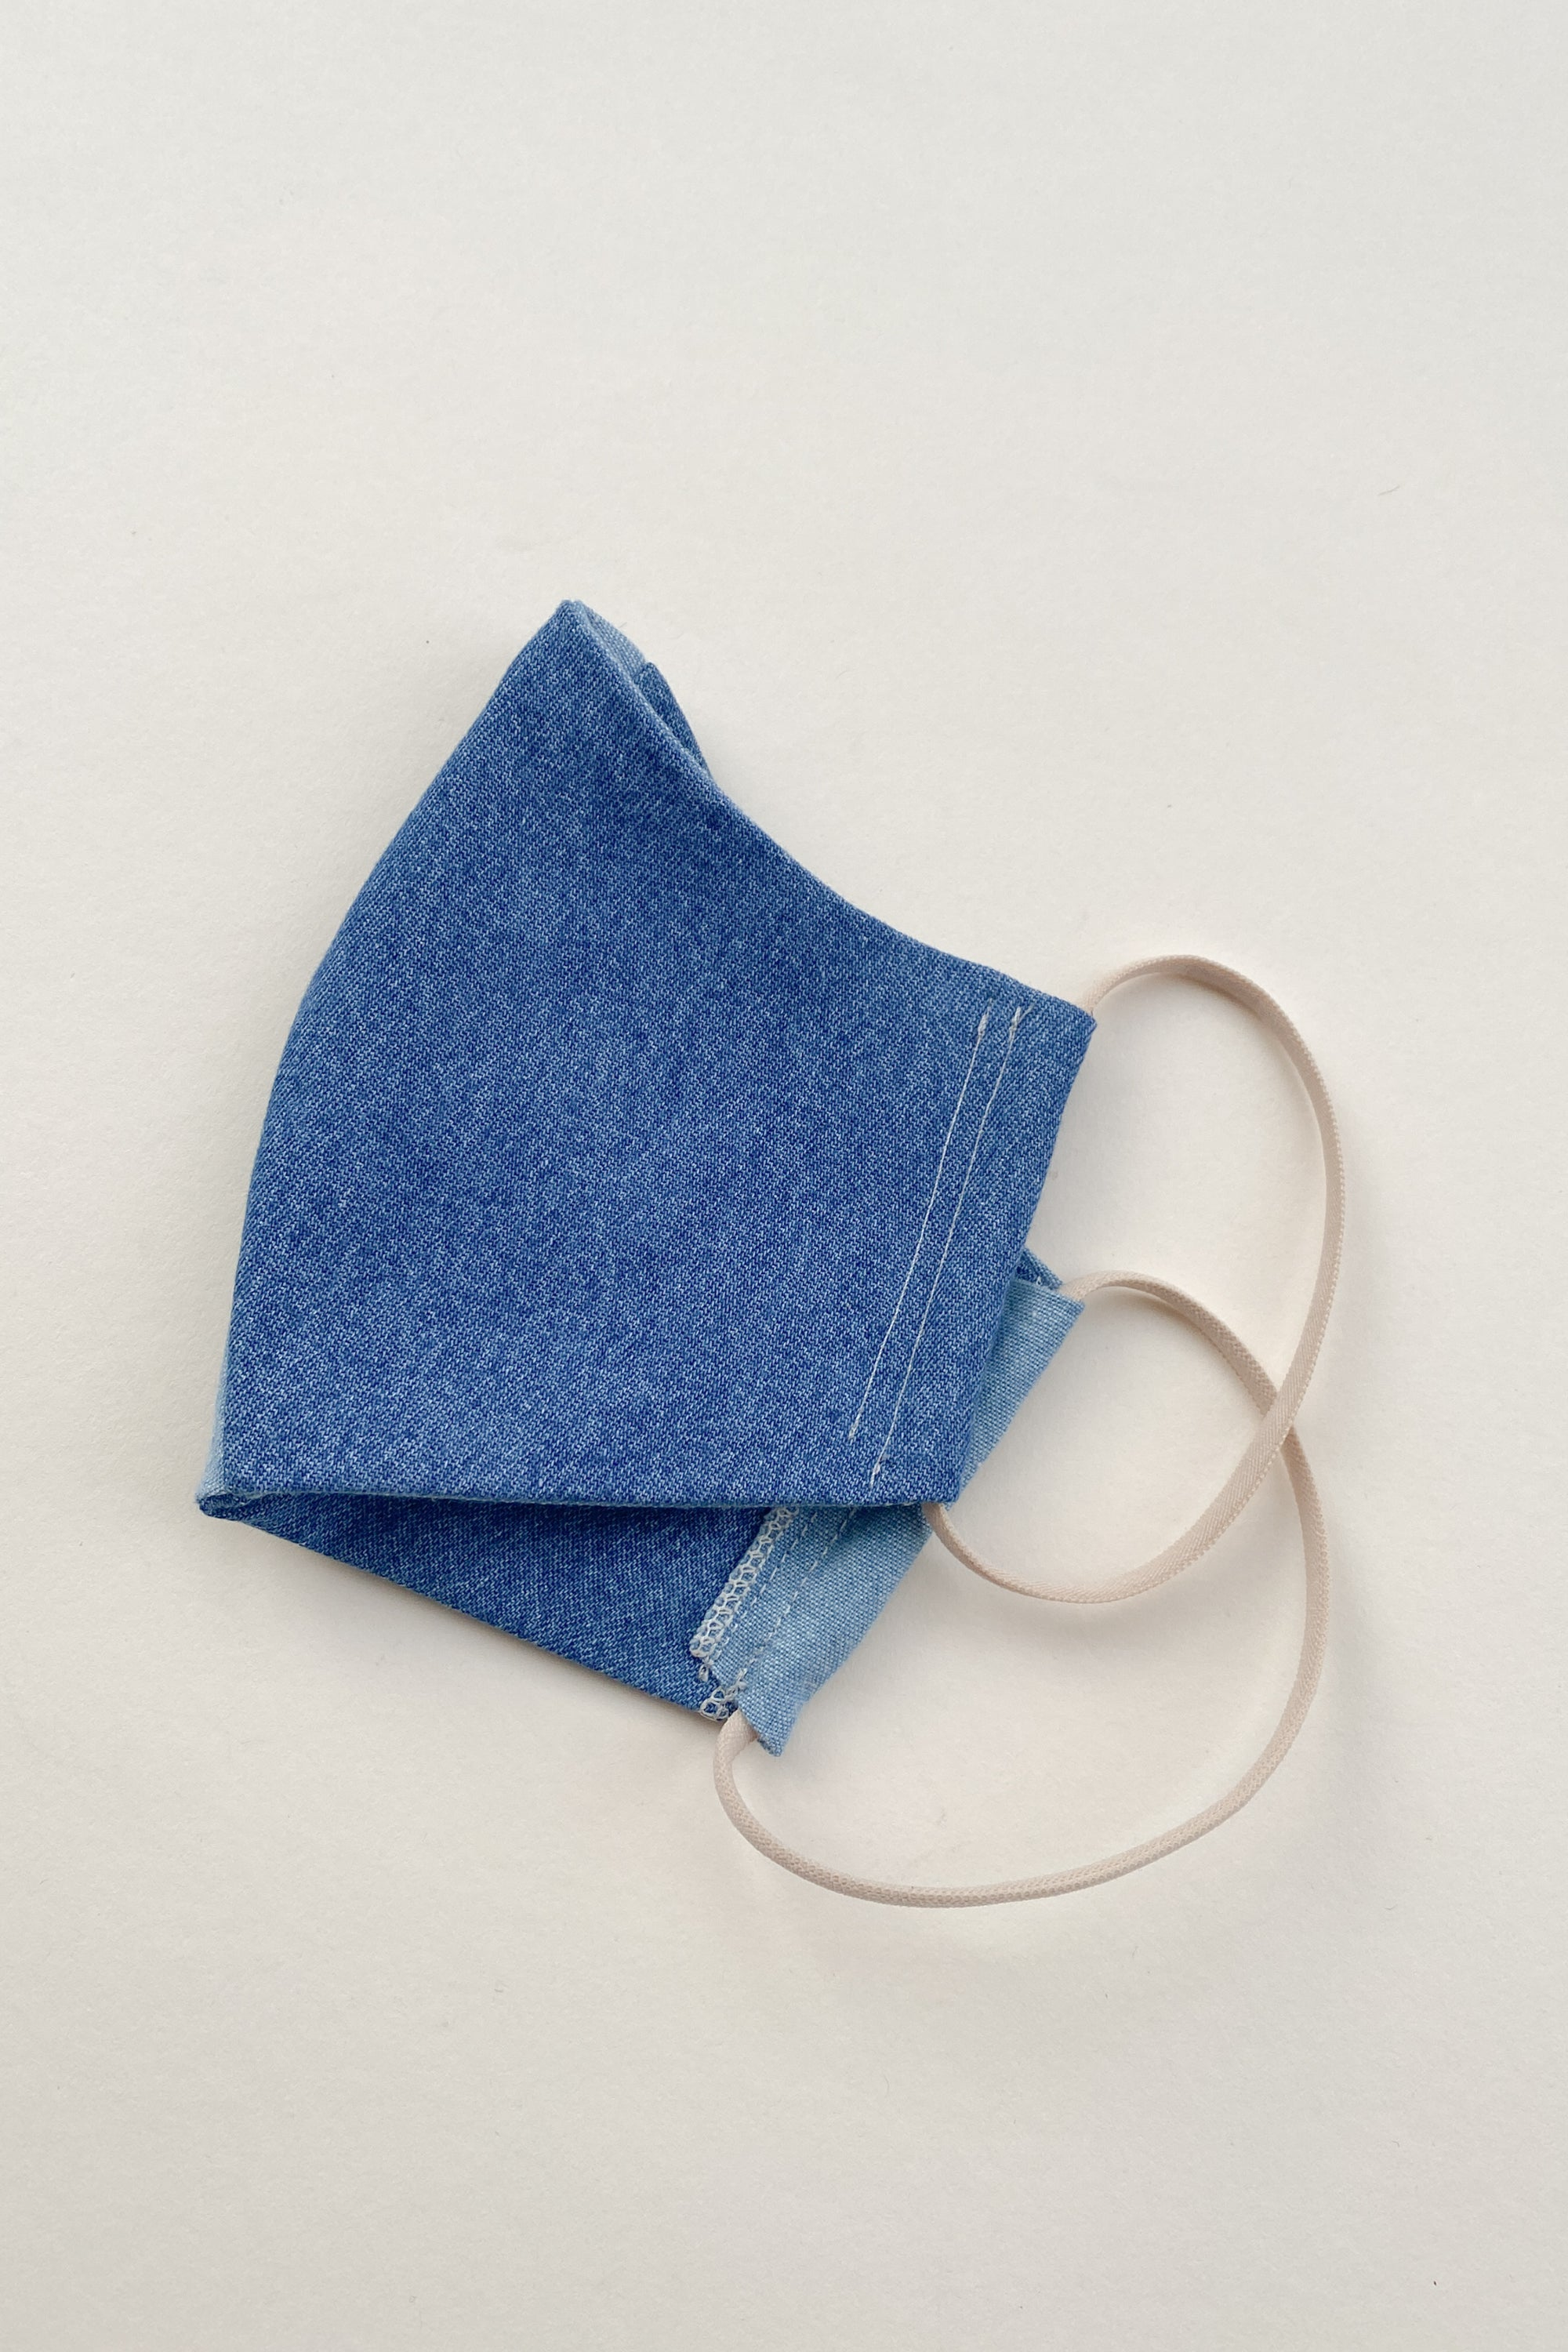 Repurposed Two-Tone Denim Mask